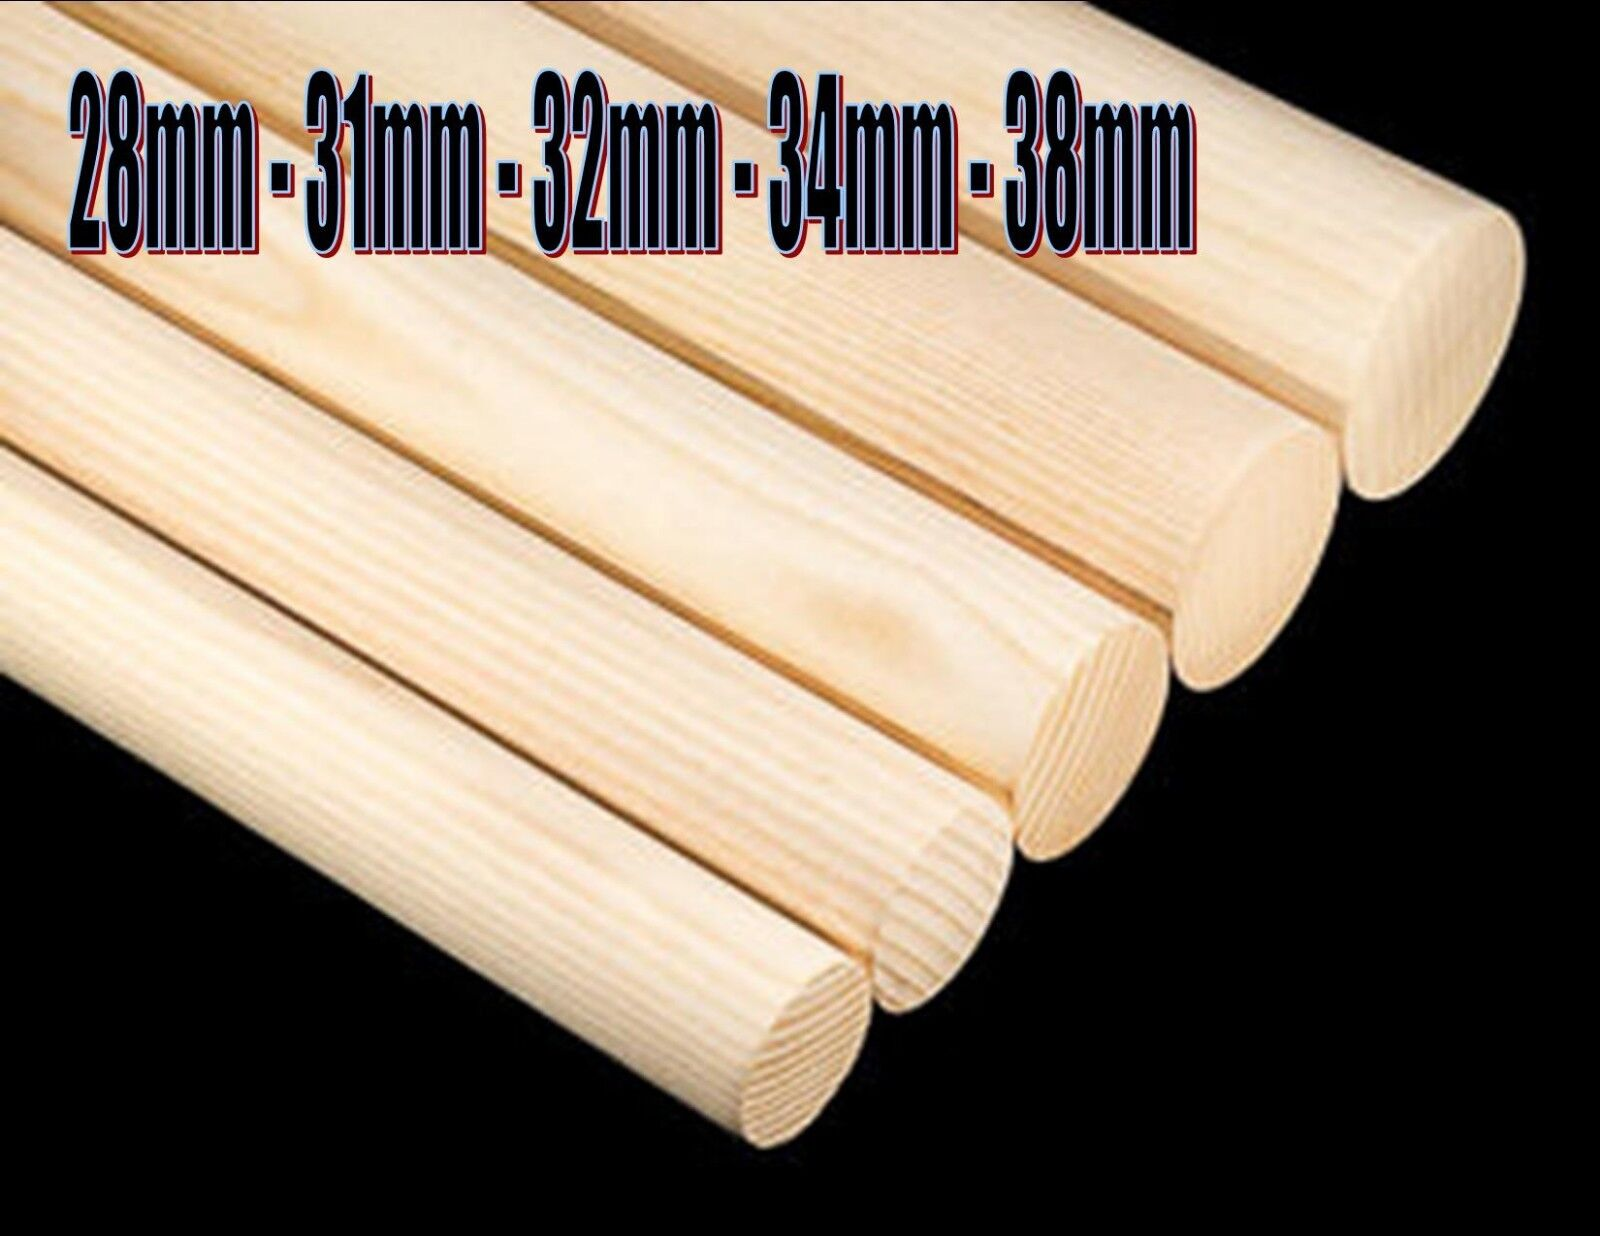 Wooden Hardwood Dowels clothes hanging handrail broom brush 28mm 31mm 34mm 38mm